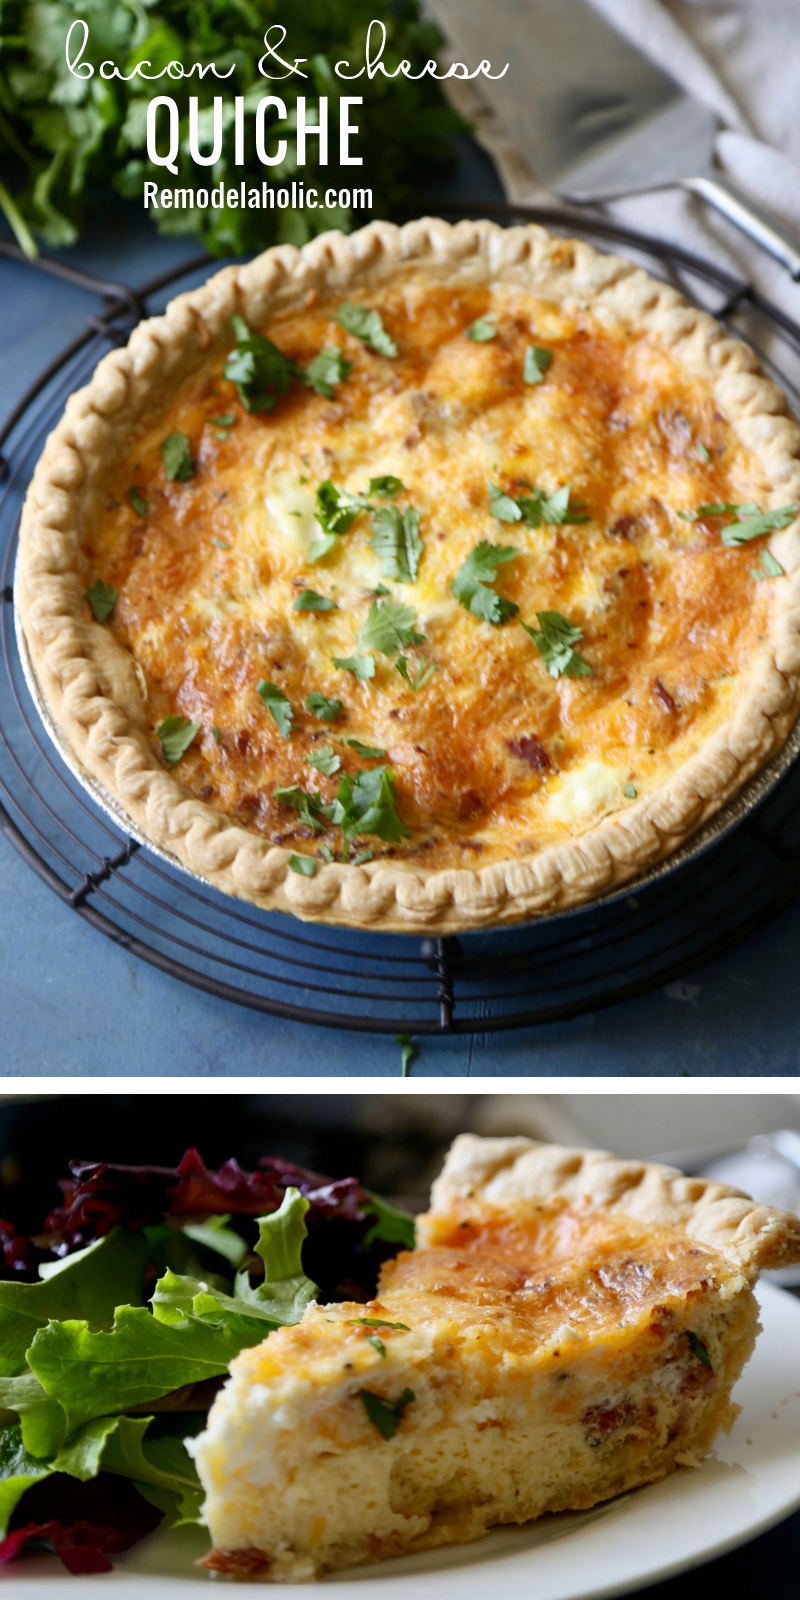 A delicious recipe for breakfast or dinner! Bacon & Cheese Quiche at Remodelaholic.com